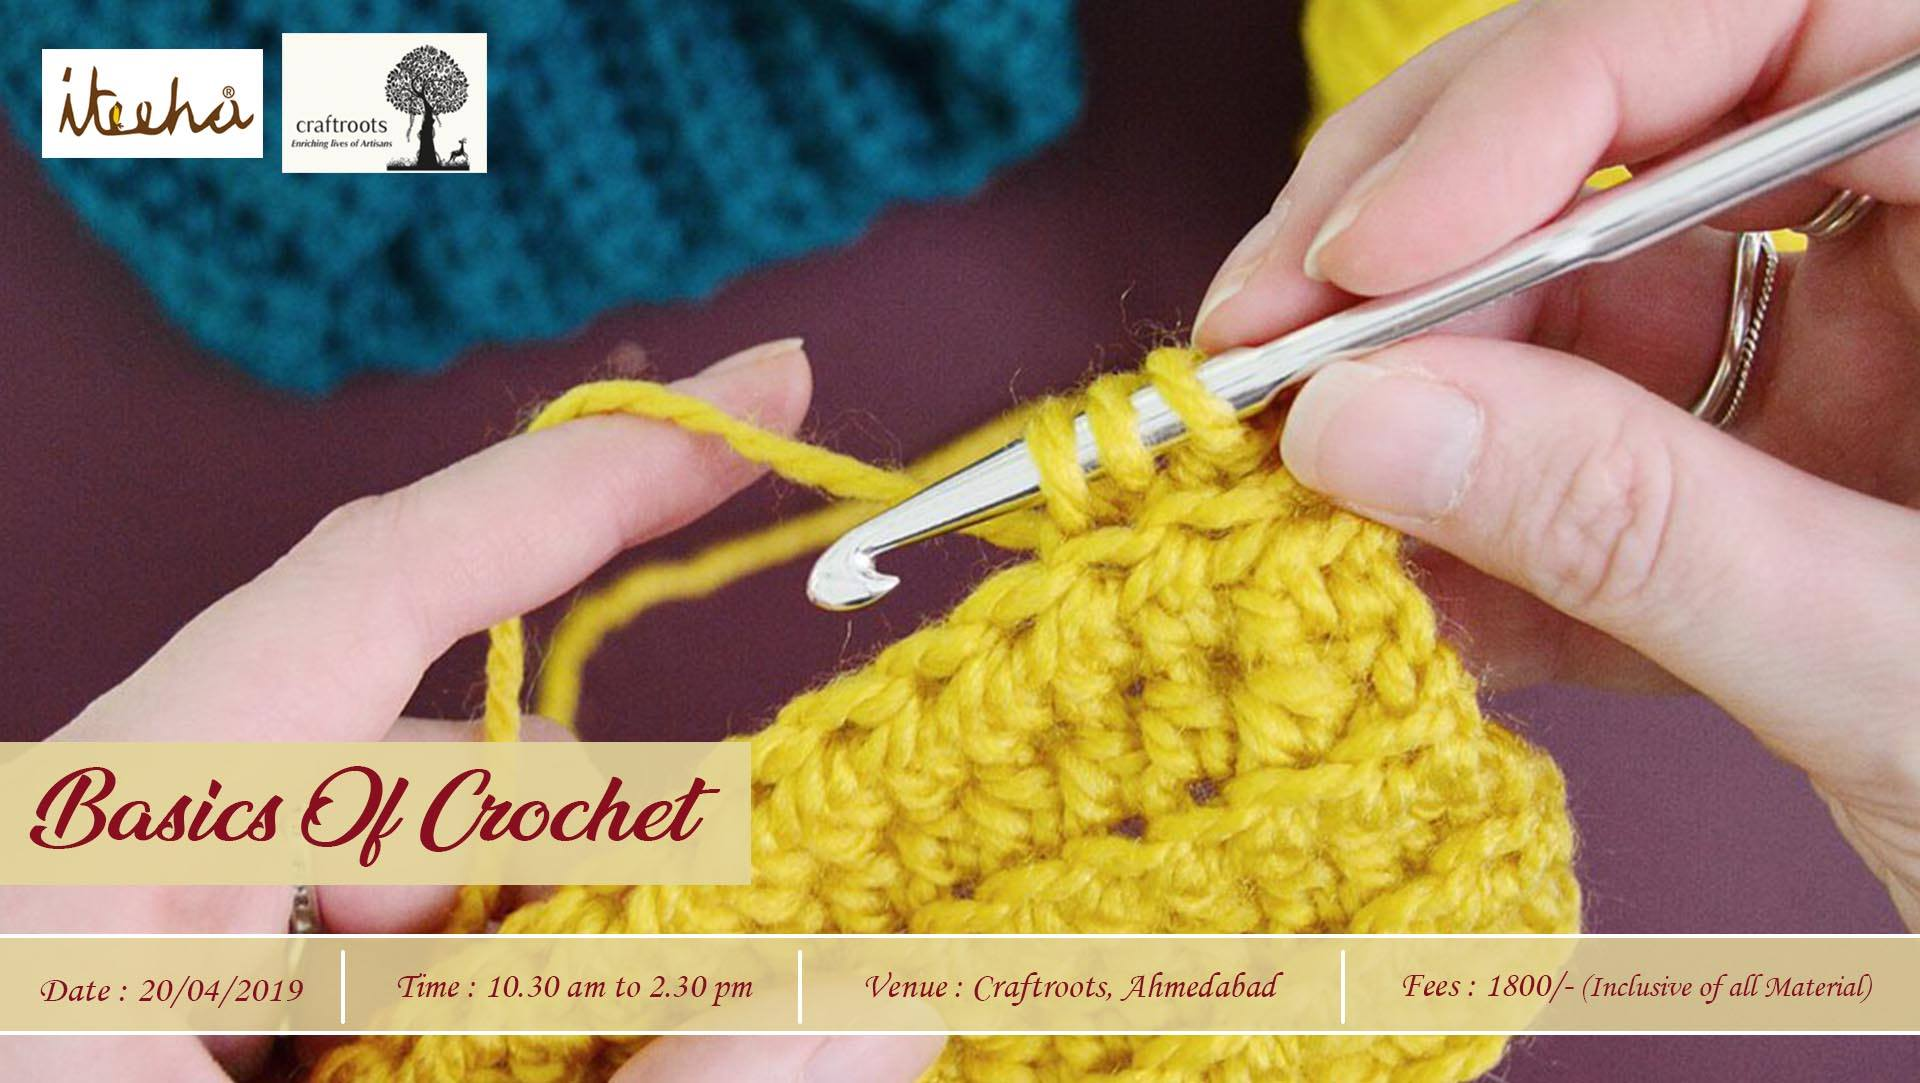 https://creativeyatra.com/wp-content/uploads/2019/04/Basics-of-Crochet.jpg